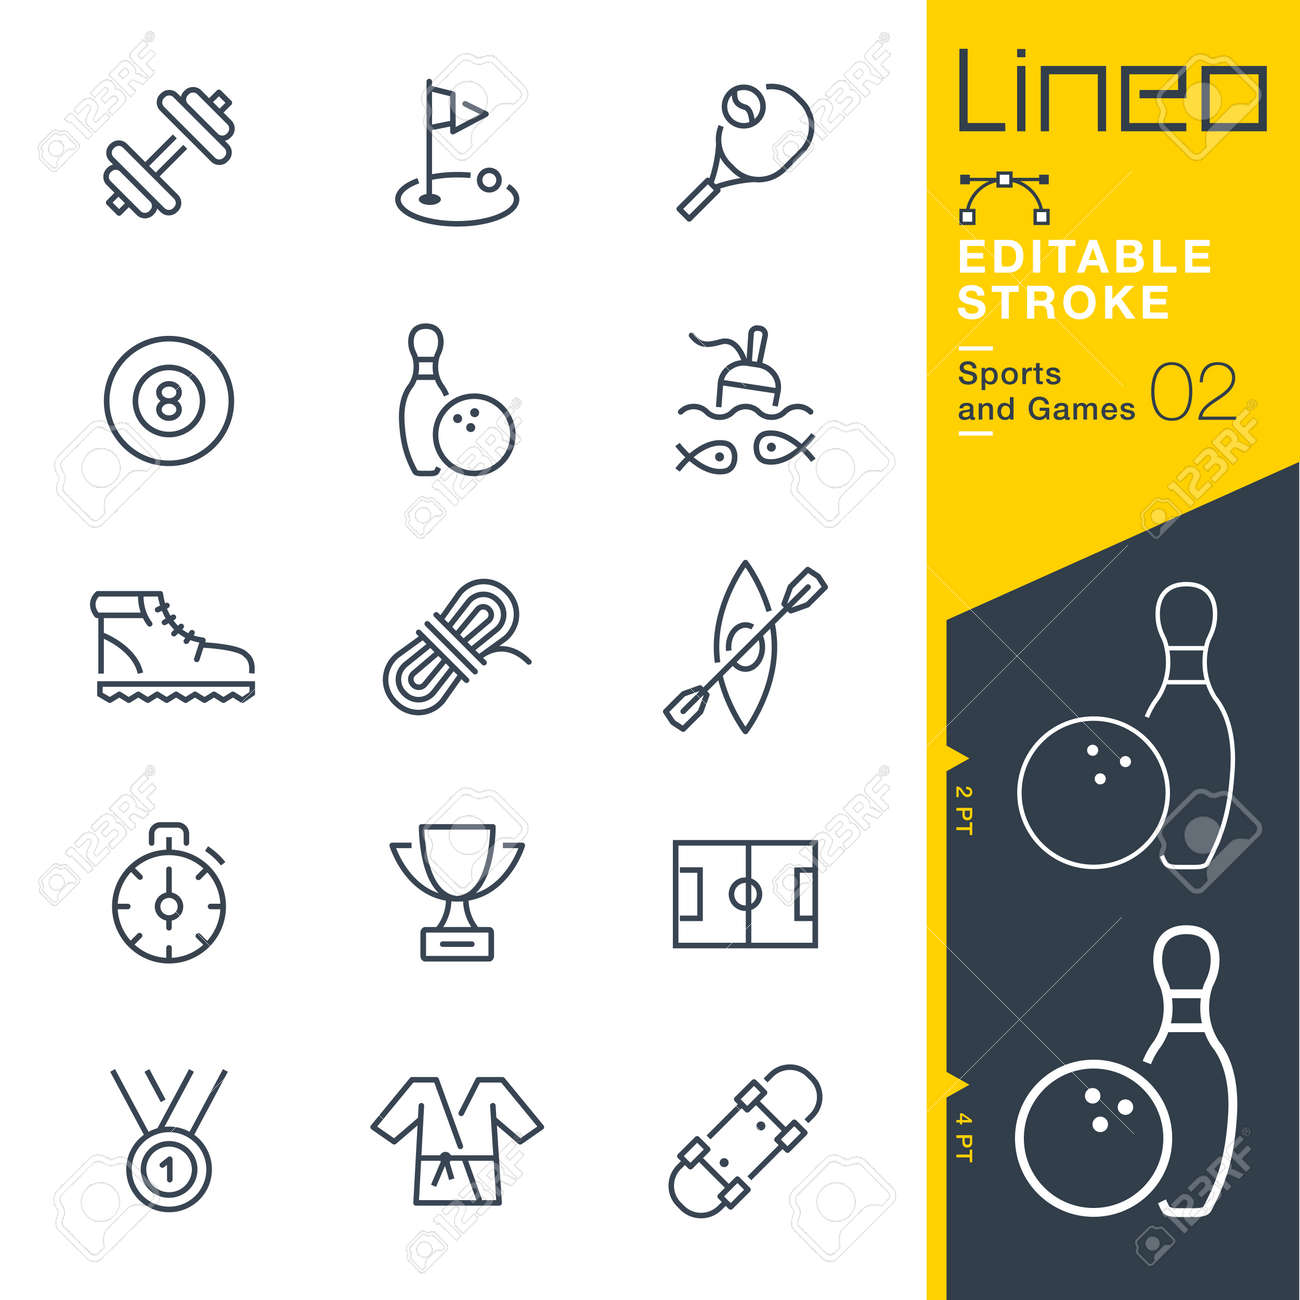 Lineo Editable Stroke - Sports and Games line icons Vector Icons - Adjust stroke weight - Change to any color - 85641772